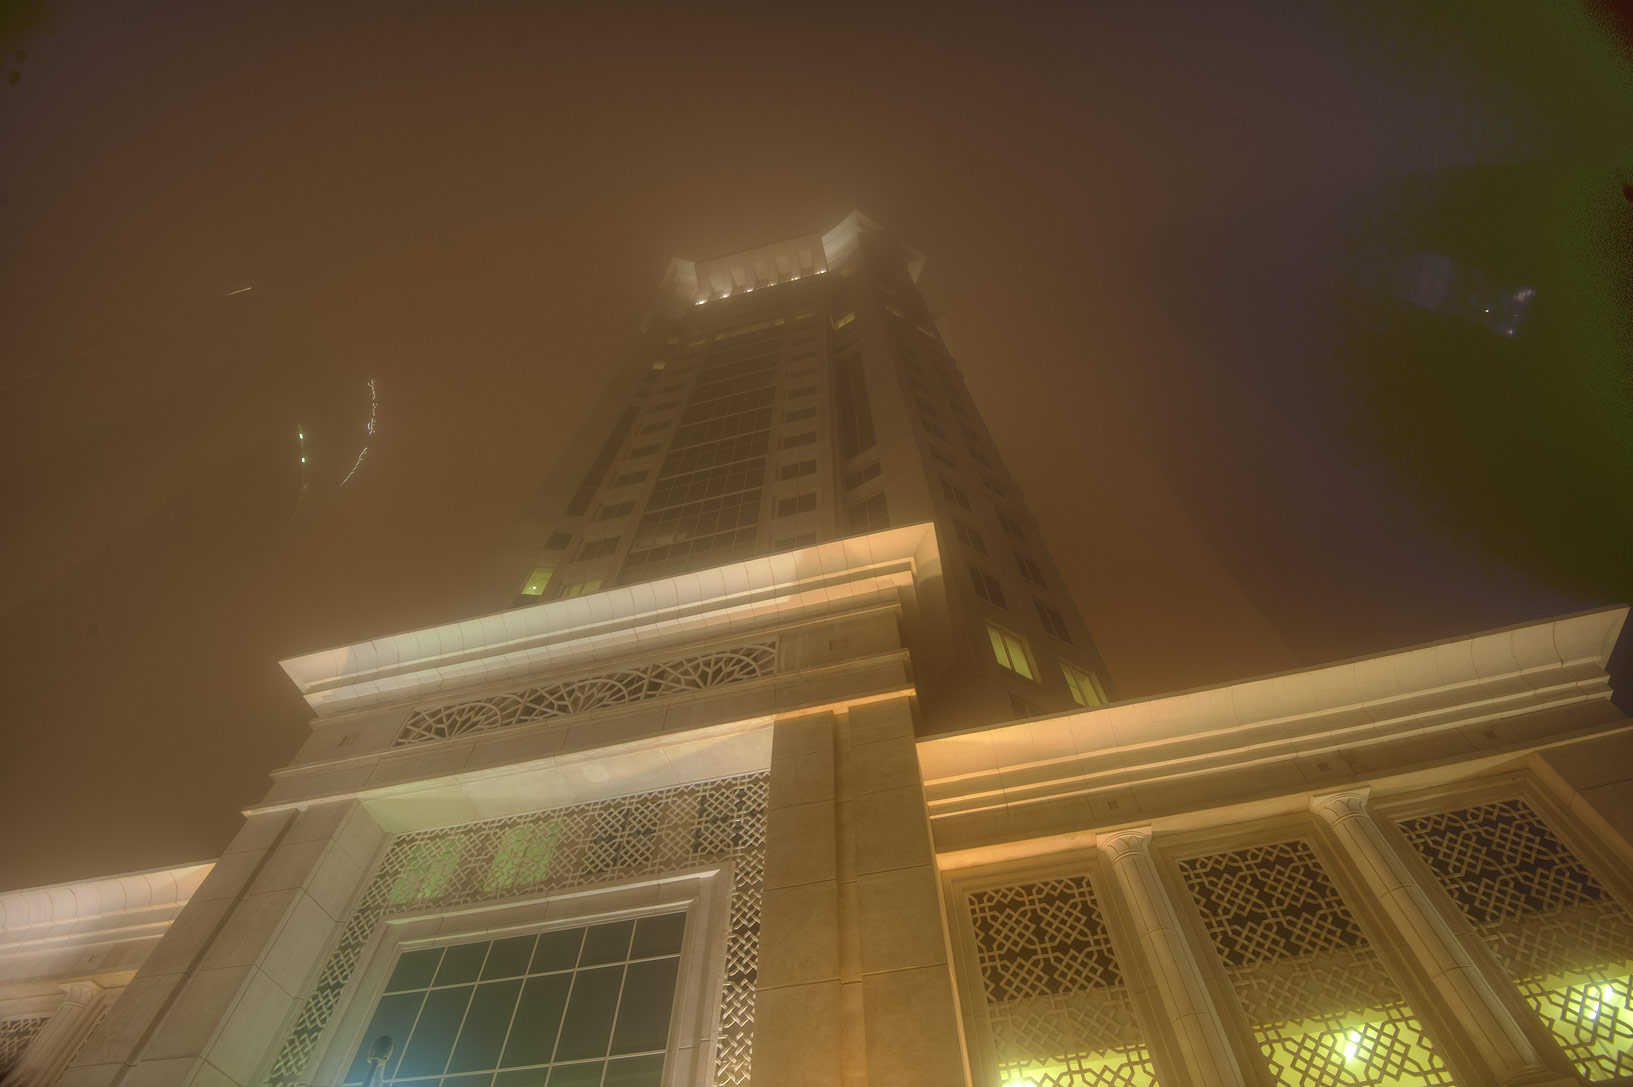 Al Gassar in West Bay during dust storm. Doha, Qatar